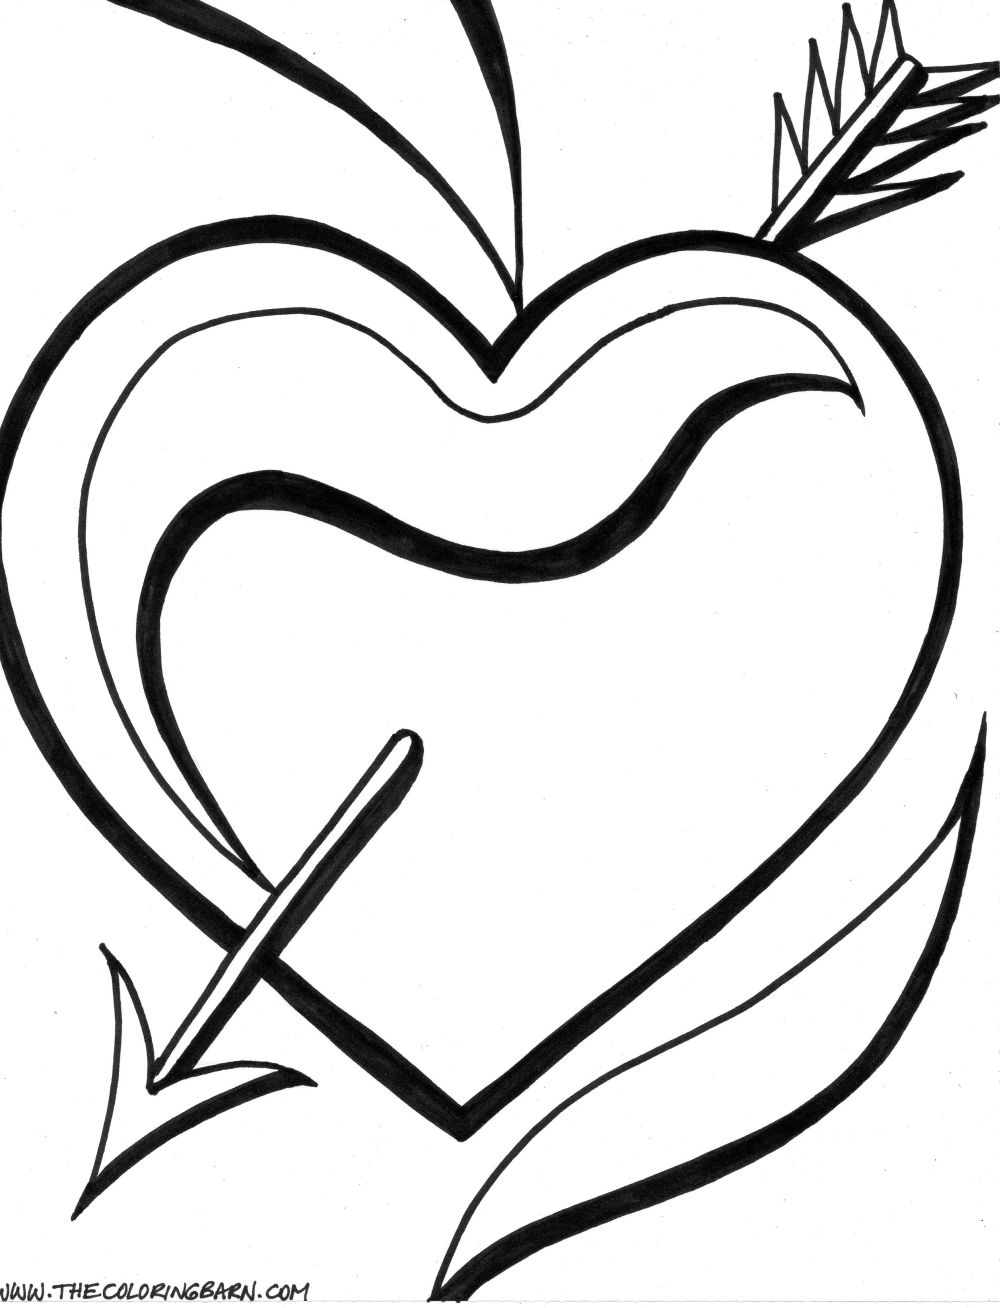 Heart Rose Drawing at GetDrawings.com | Free for personal use Heart ...